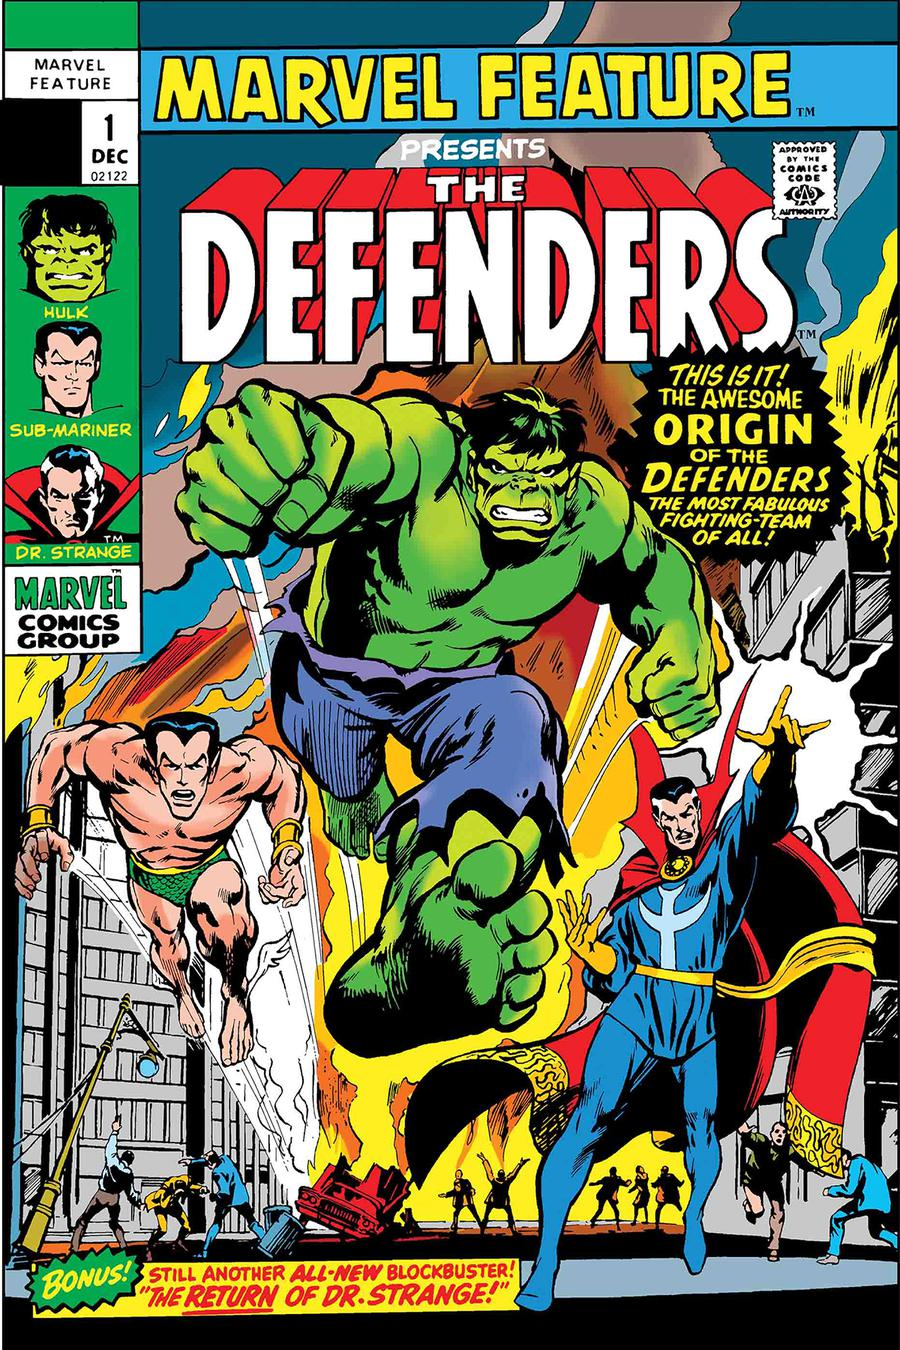 Marvel Feature #1 Cover B Defenders Facsimile Edition